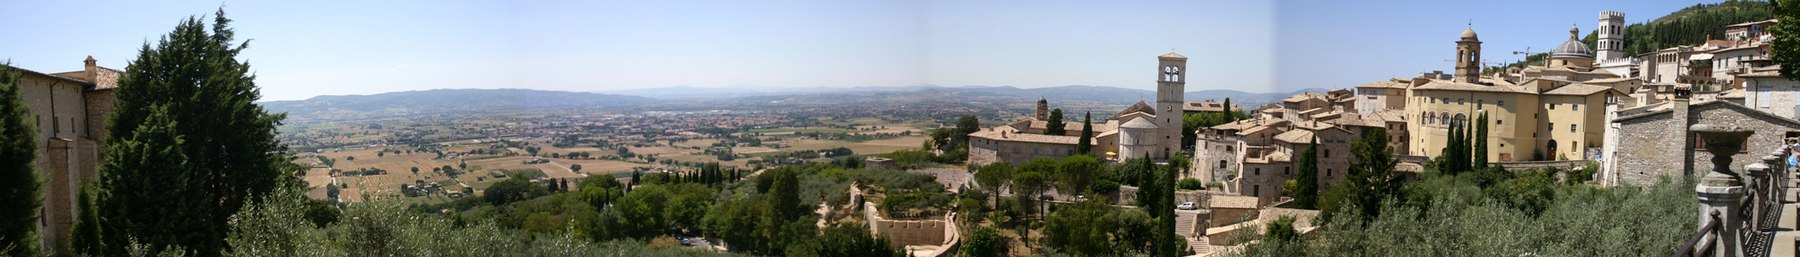 Assisi banner Panorama from Santa Chiara square.jpg